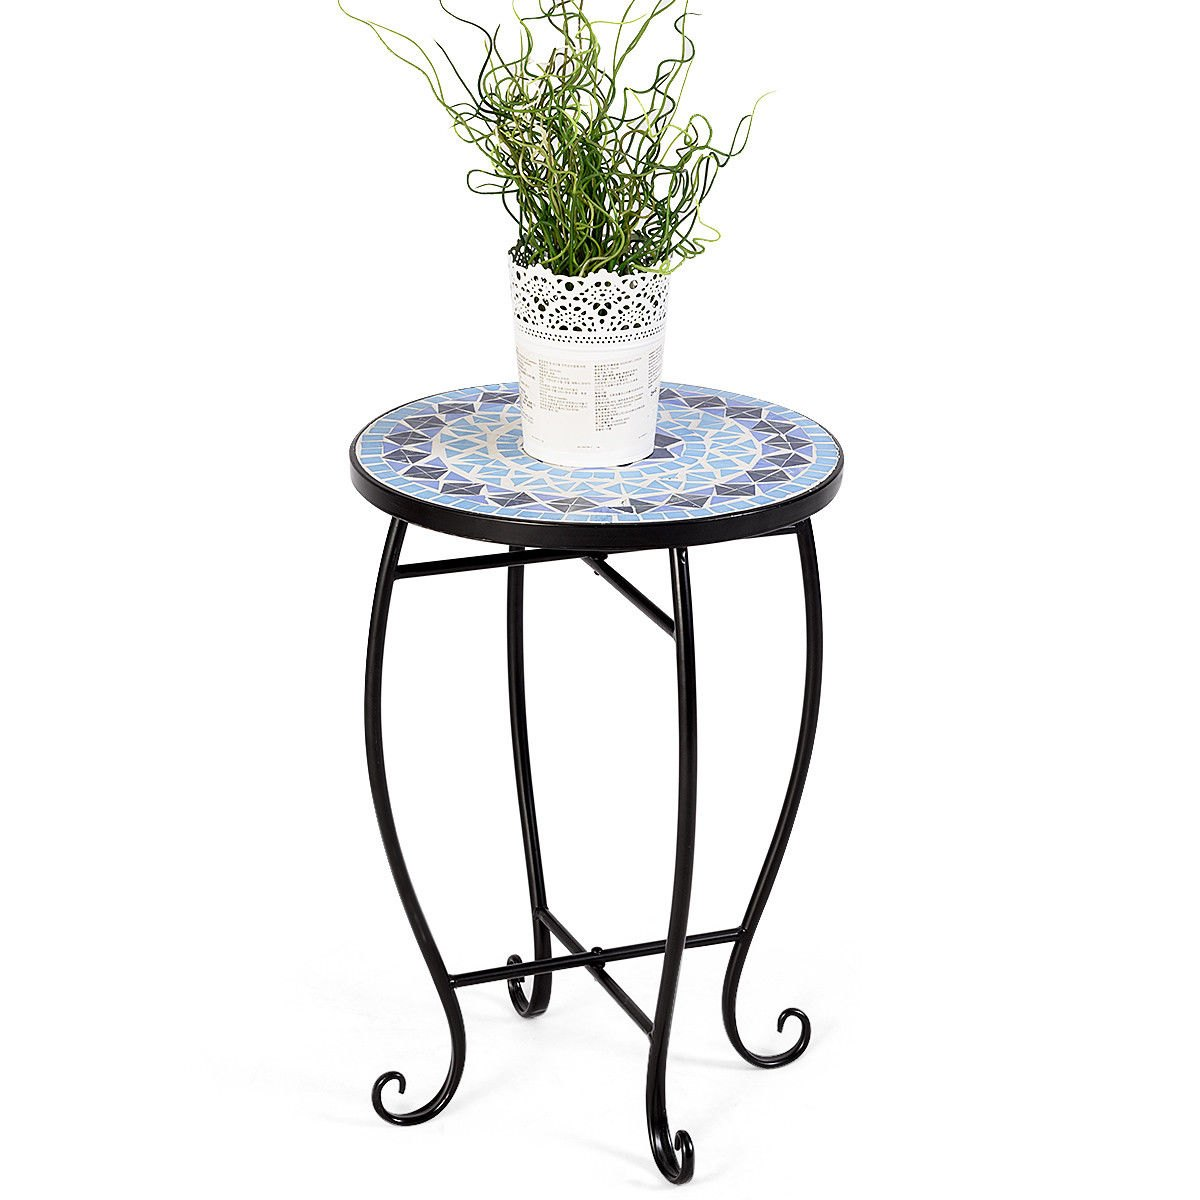 way outdoor indoor accent table plant stand cobalt blue metal garden color scheme steel wooden and chairs big umbrella marble nightstand target coffee ideas decorative stands